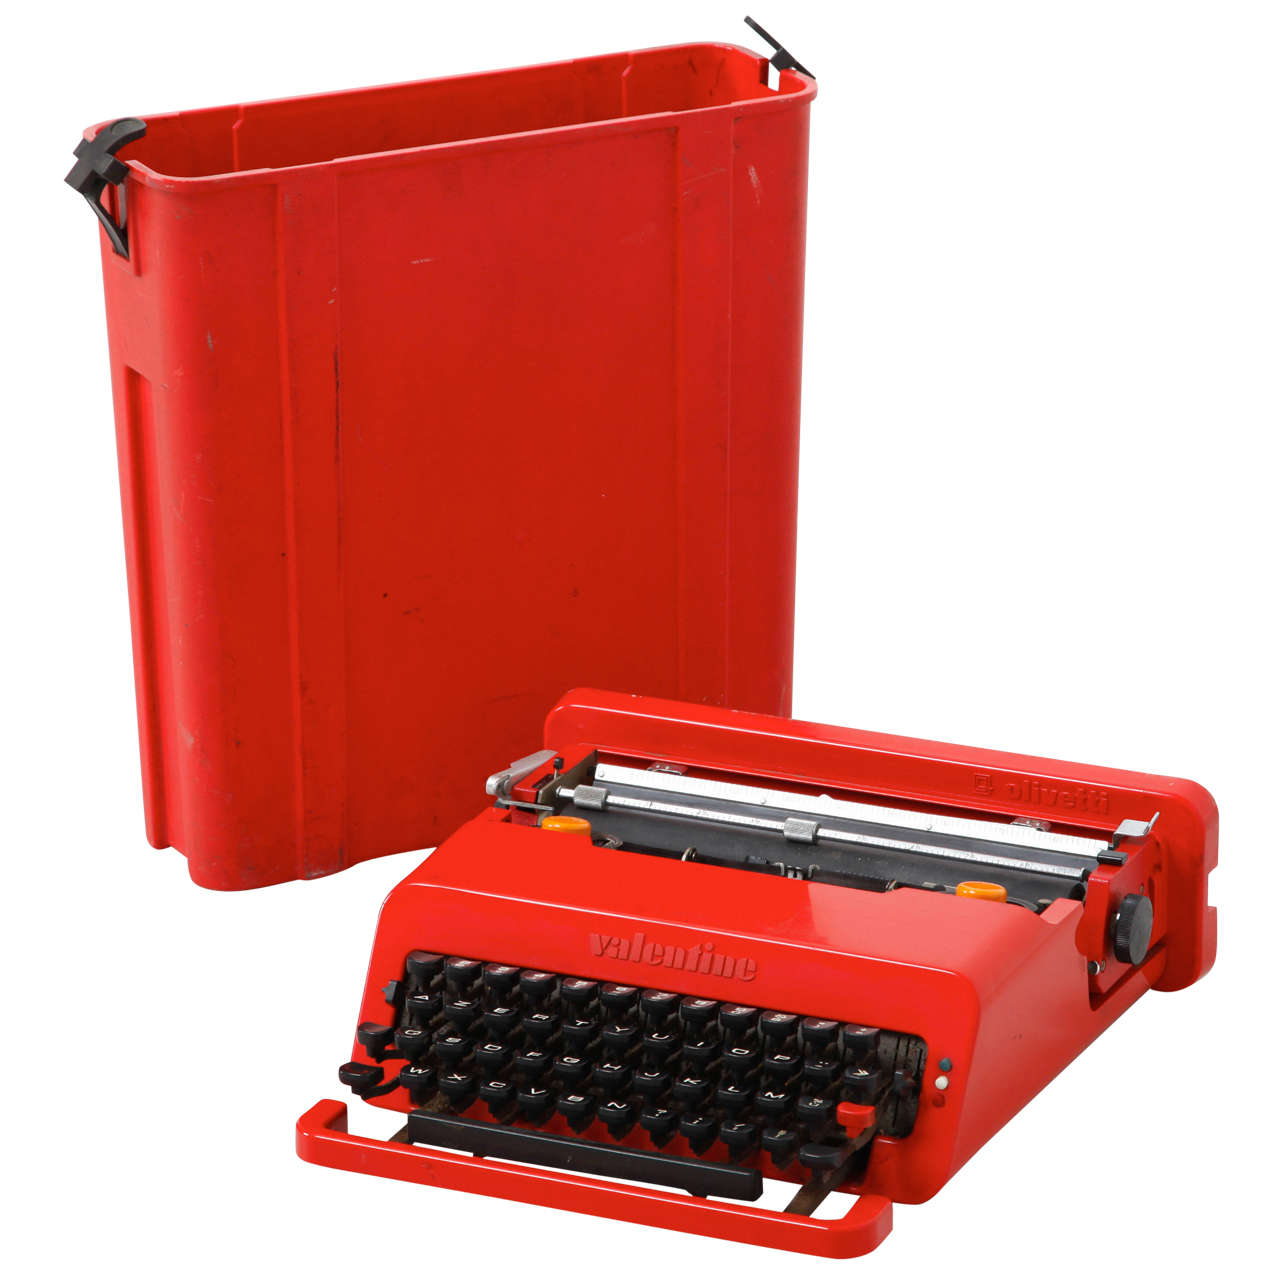 Olivetti Valentine Typewriter Designed By Ettore Sottsass U0026 Perry King.